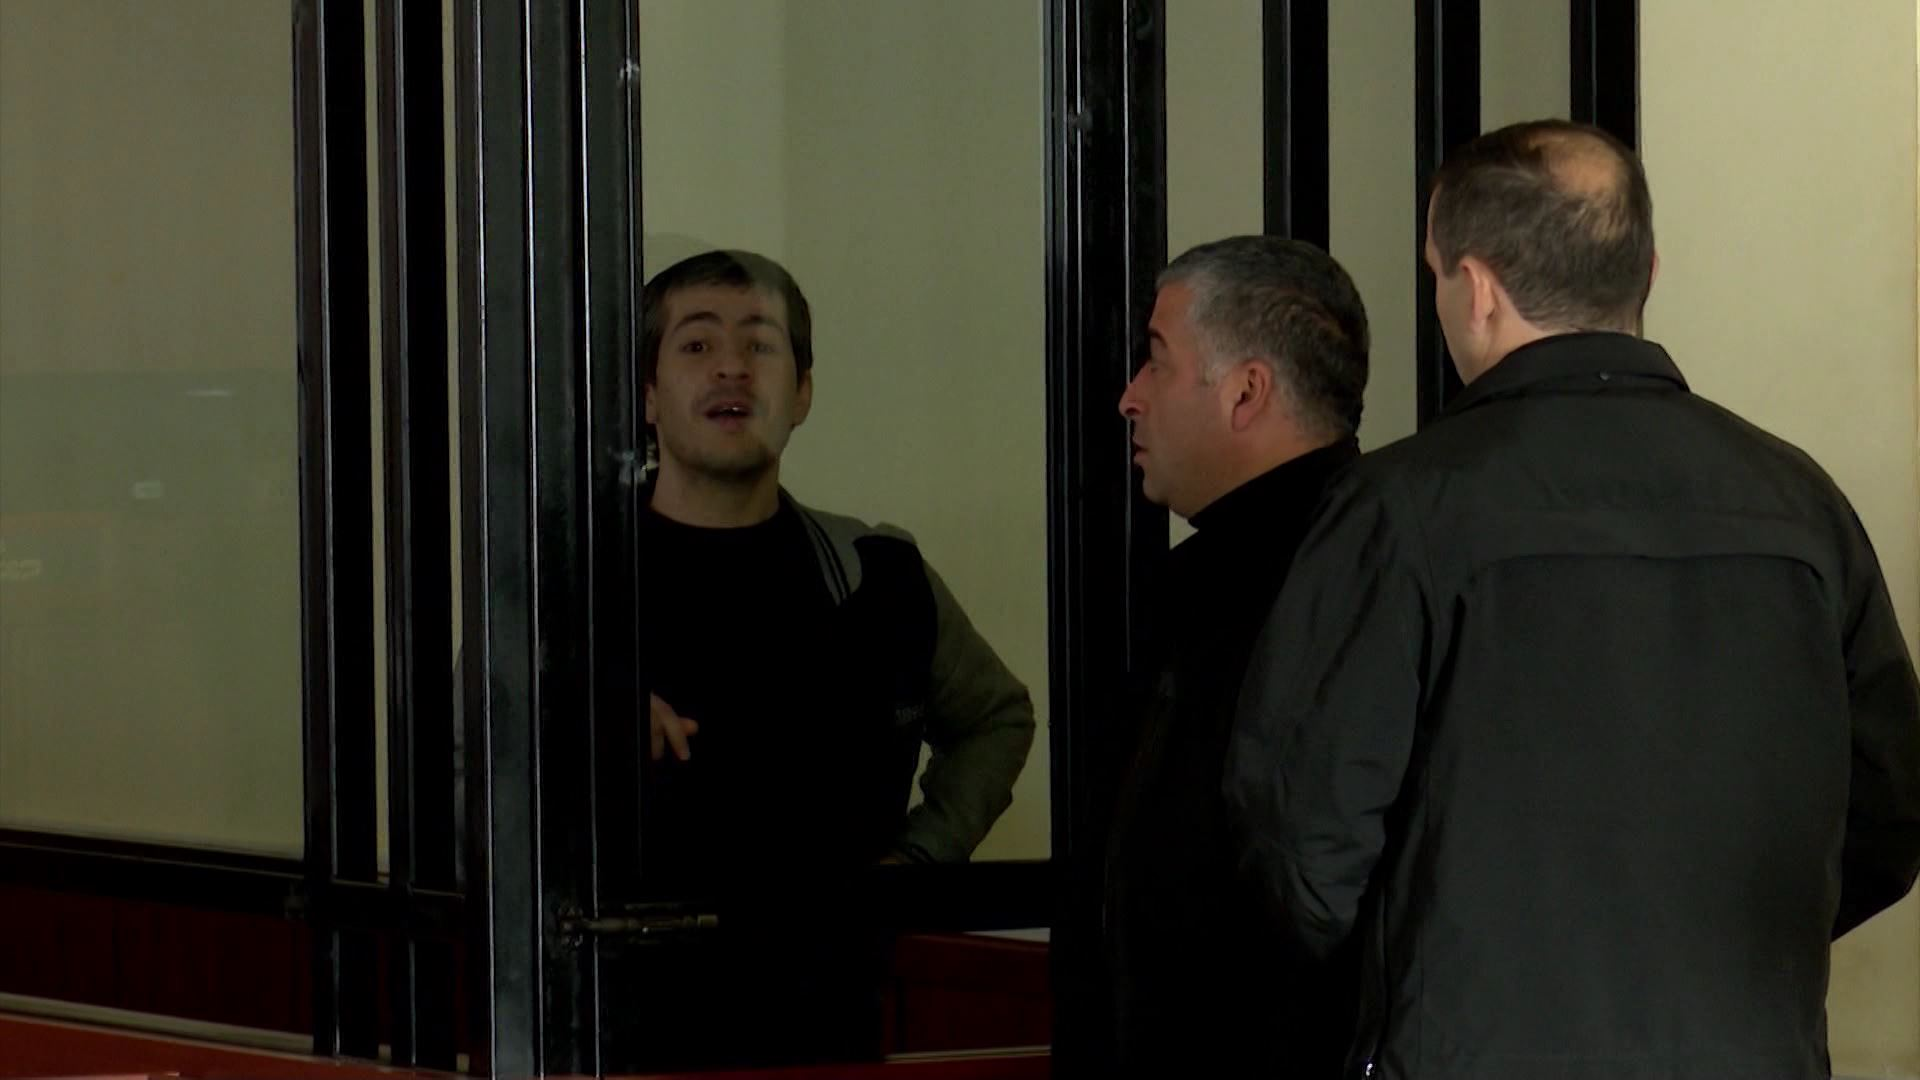 Lasha Dekanadze is innocent - the Supreme Court's decision